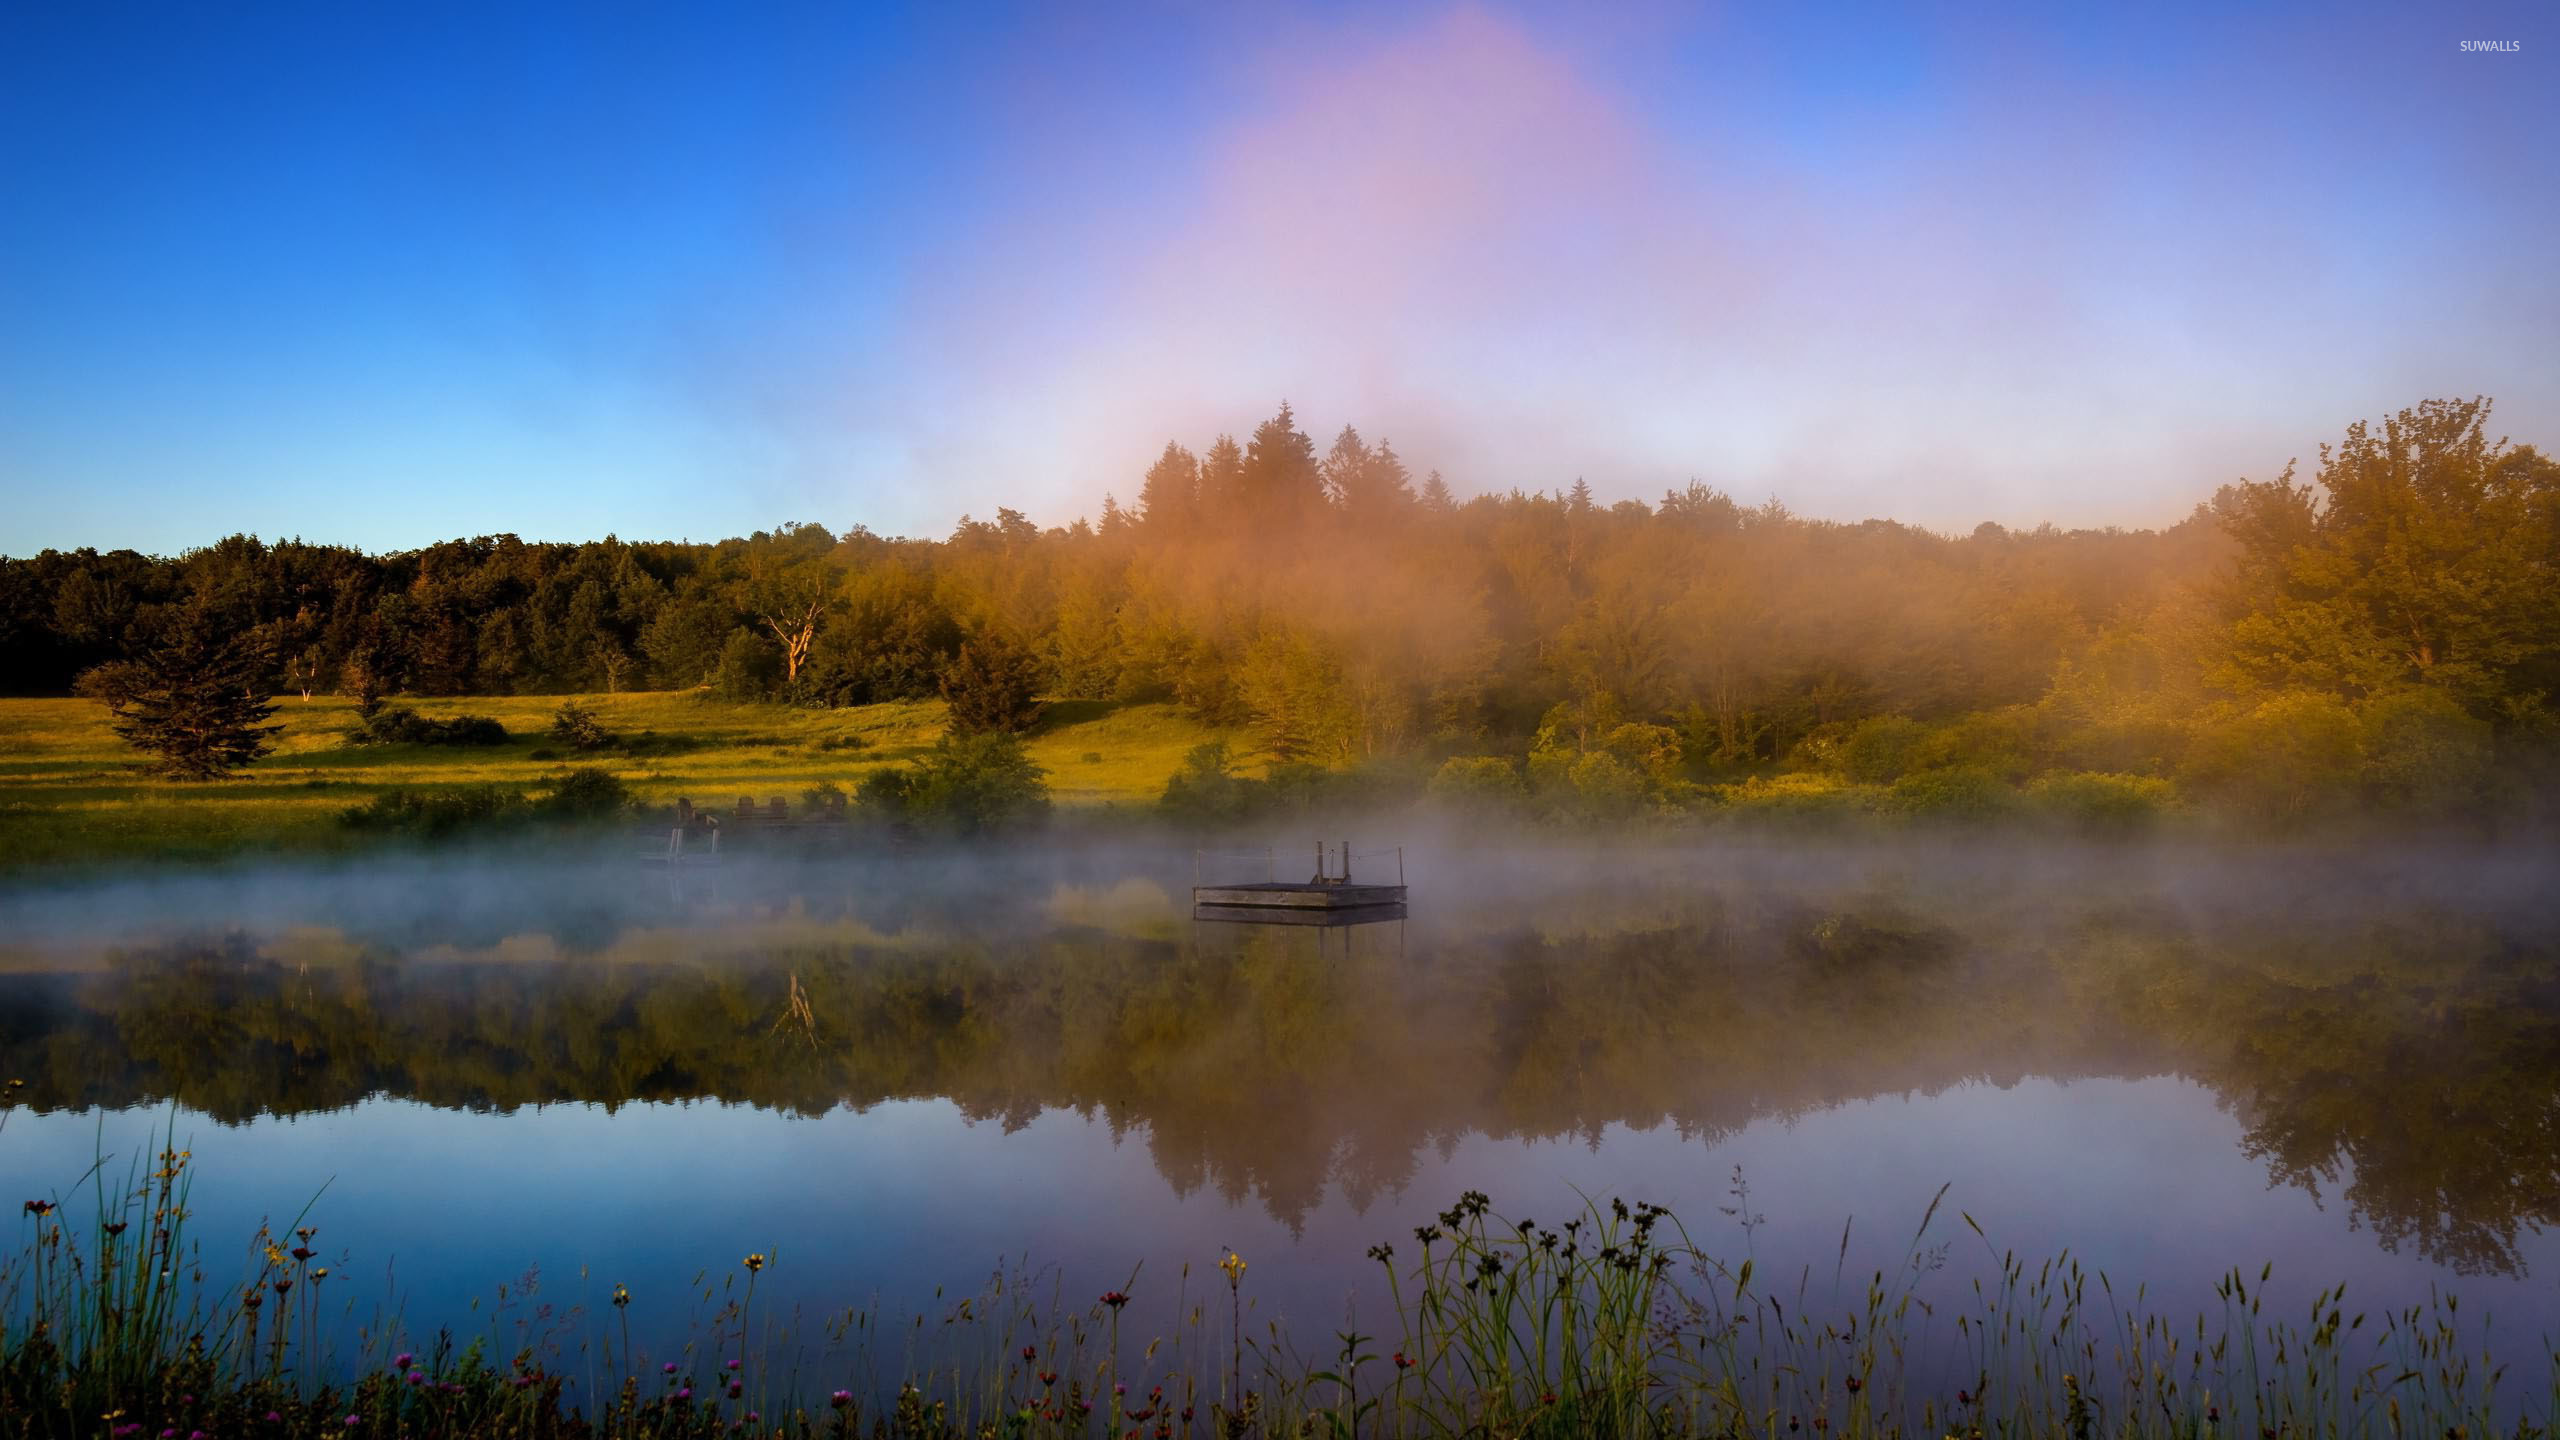 Fall Mountain Wallpaper Free Foggy Lake By The Autumn Forest Wallpaper Nature